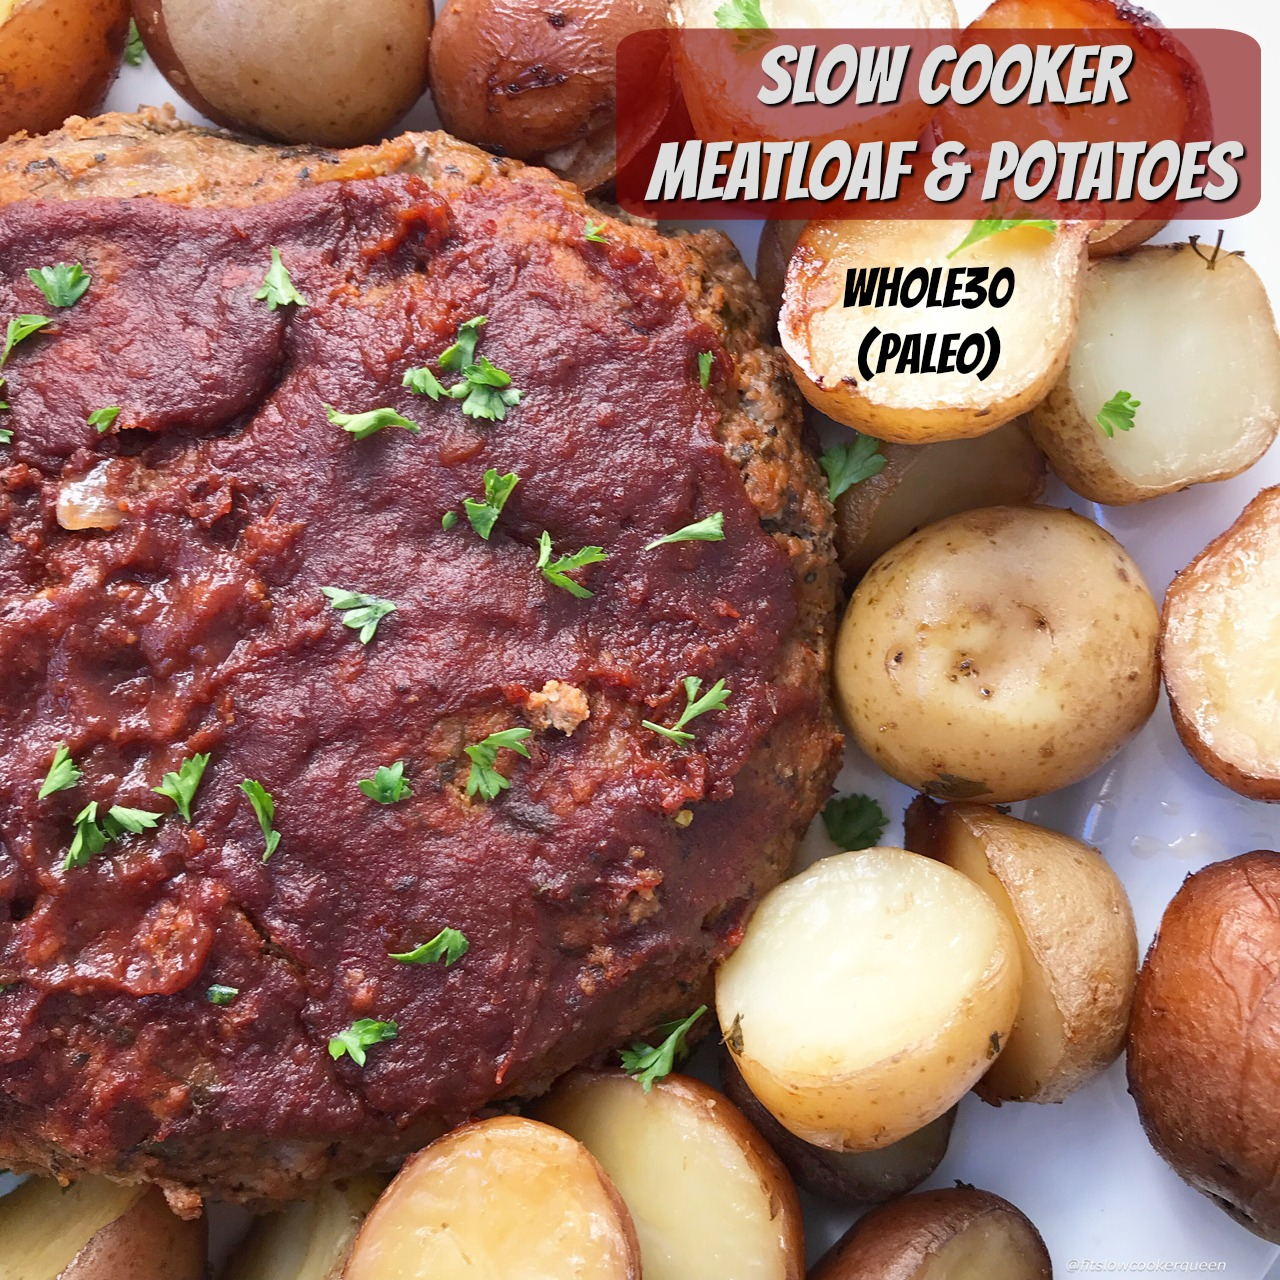 This whole30 meatloaf (paleo option too) and potato recipe is made in the slow cooker for an easy meal the entire family will enjoy.